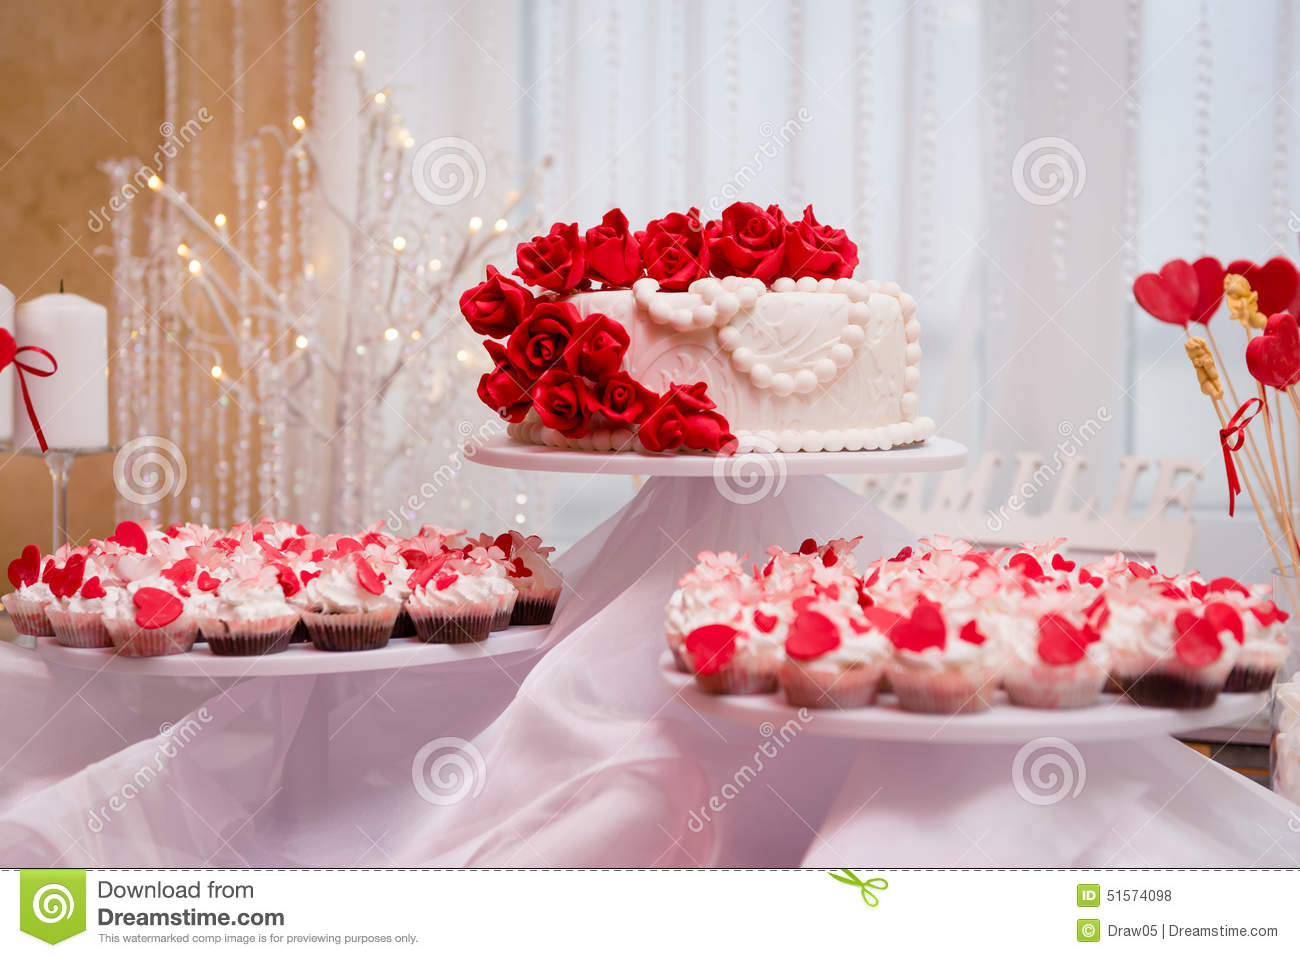 Wedding Cake And Cupcakes In Decoration Stock Photo - Image of baked ...